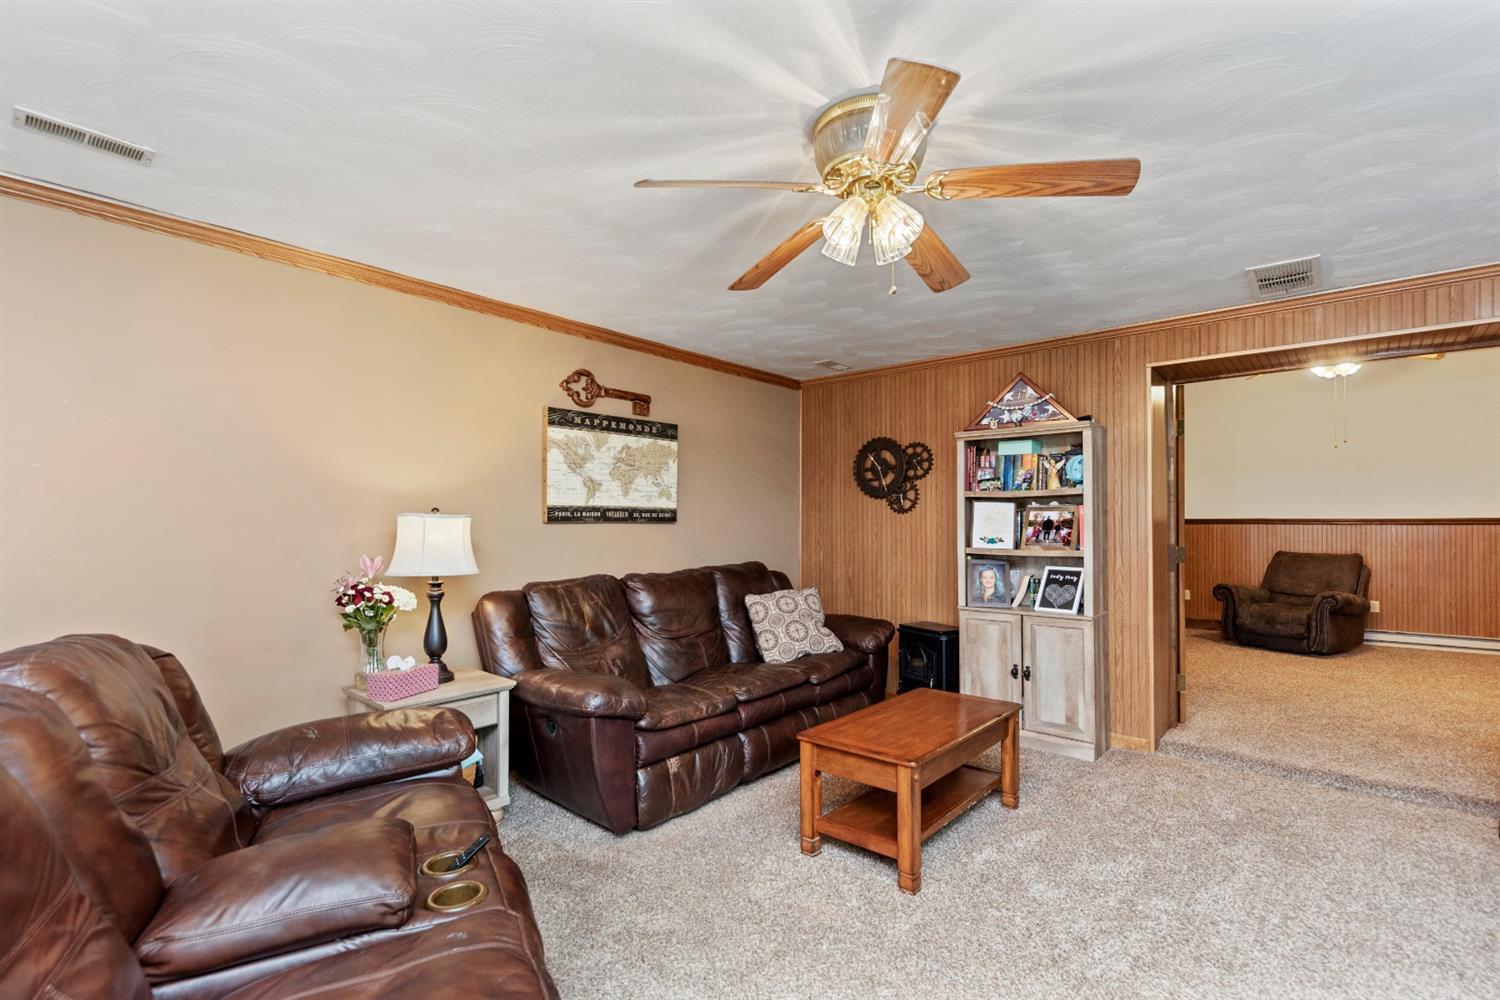 Photo 3 for 7563 Hockman Rd Jefferson Twp, OH 45168